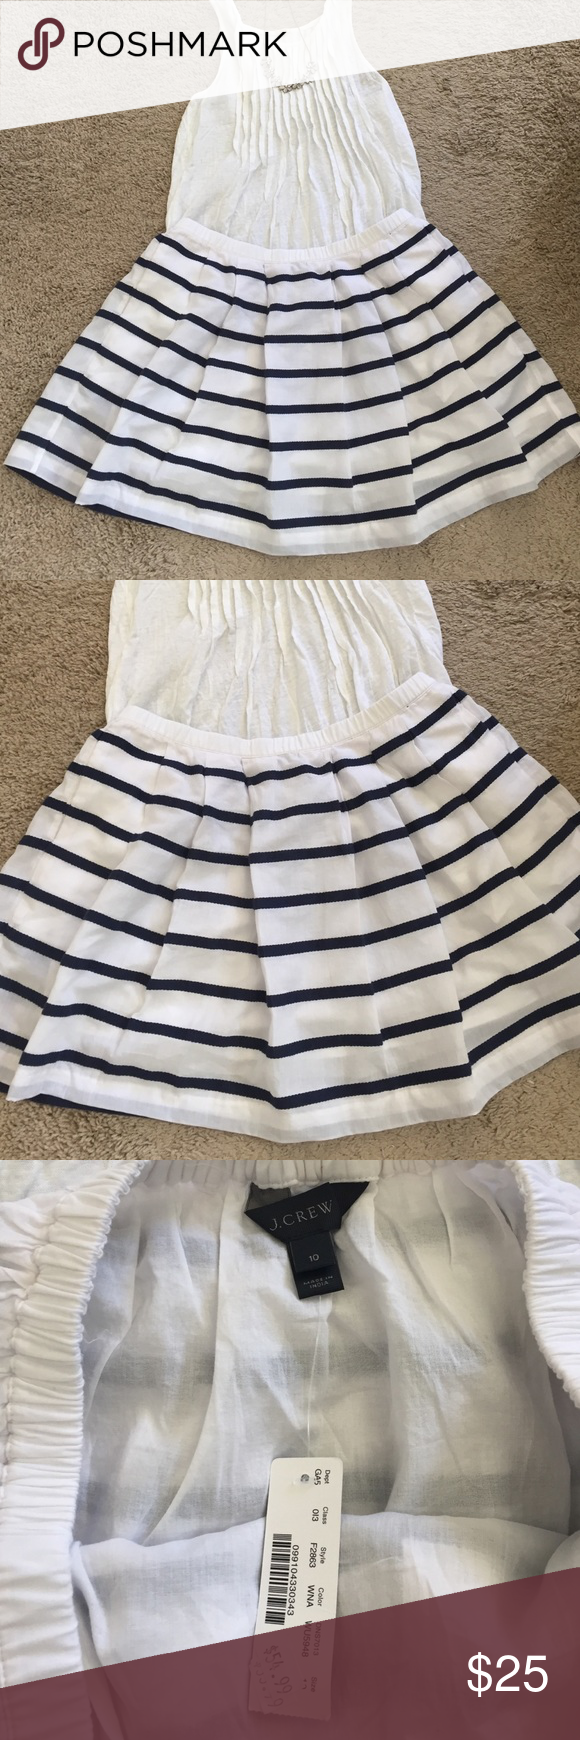 """J. Crew Blue and White Stripped Skirt NWT J.Crew White and Blue Stripped Skirt with light cotton lining, elastic waist and pockets!                                             100% Cotton Skirt with 100% Cotton Lining                Waist 31"""" Length 15 1/2"""" J. Crew Skirts Mini"""